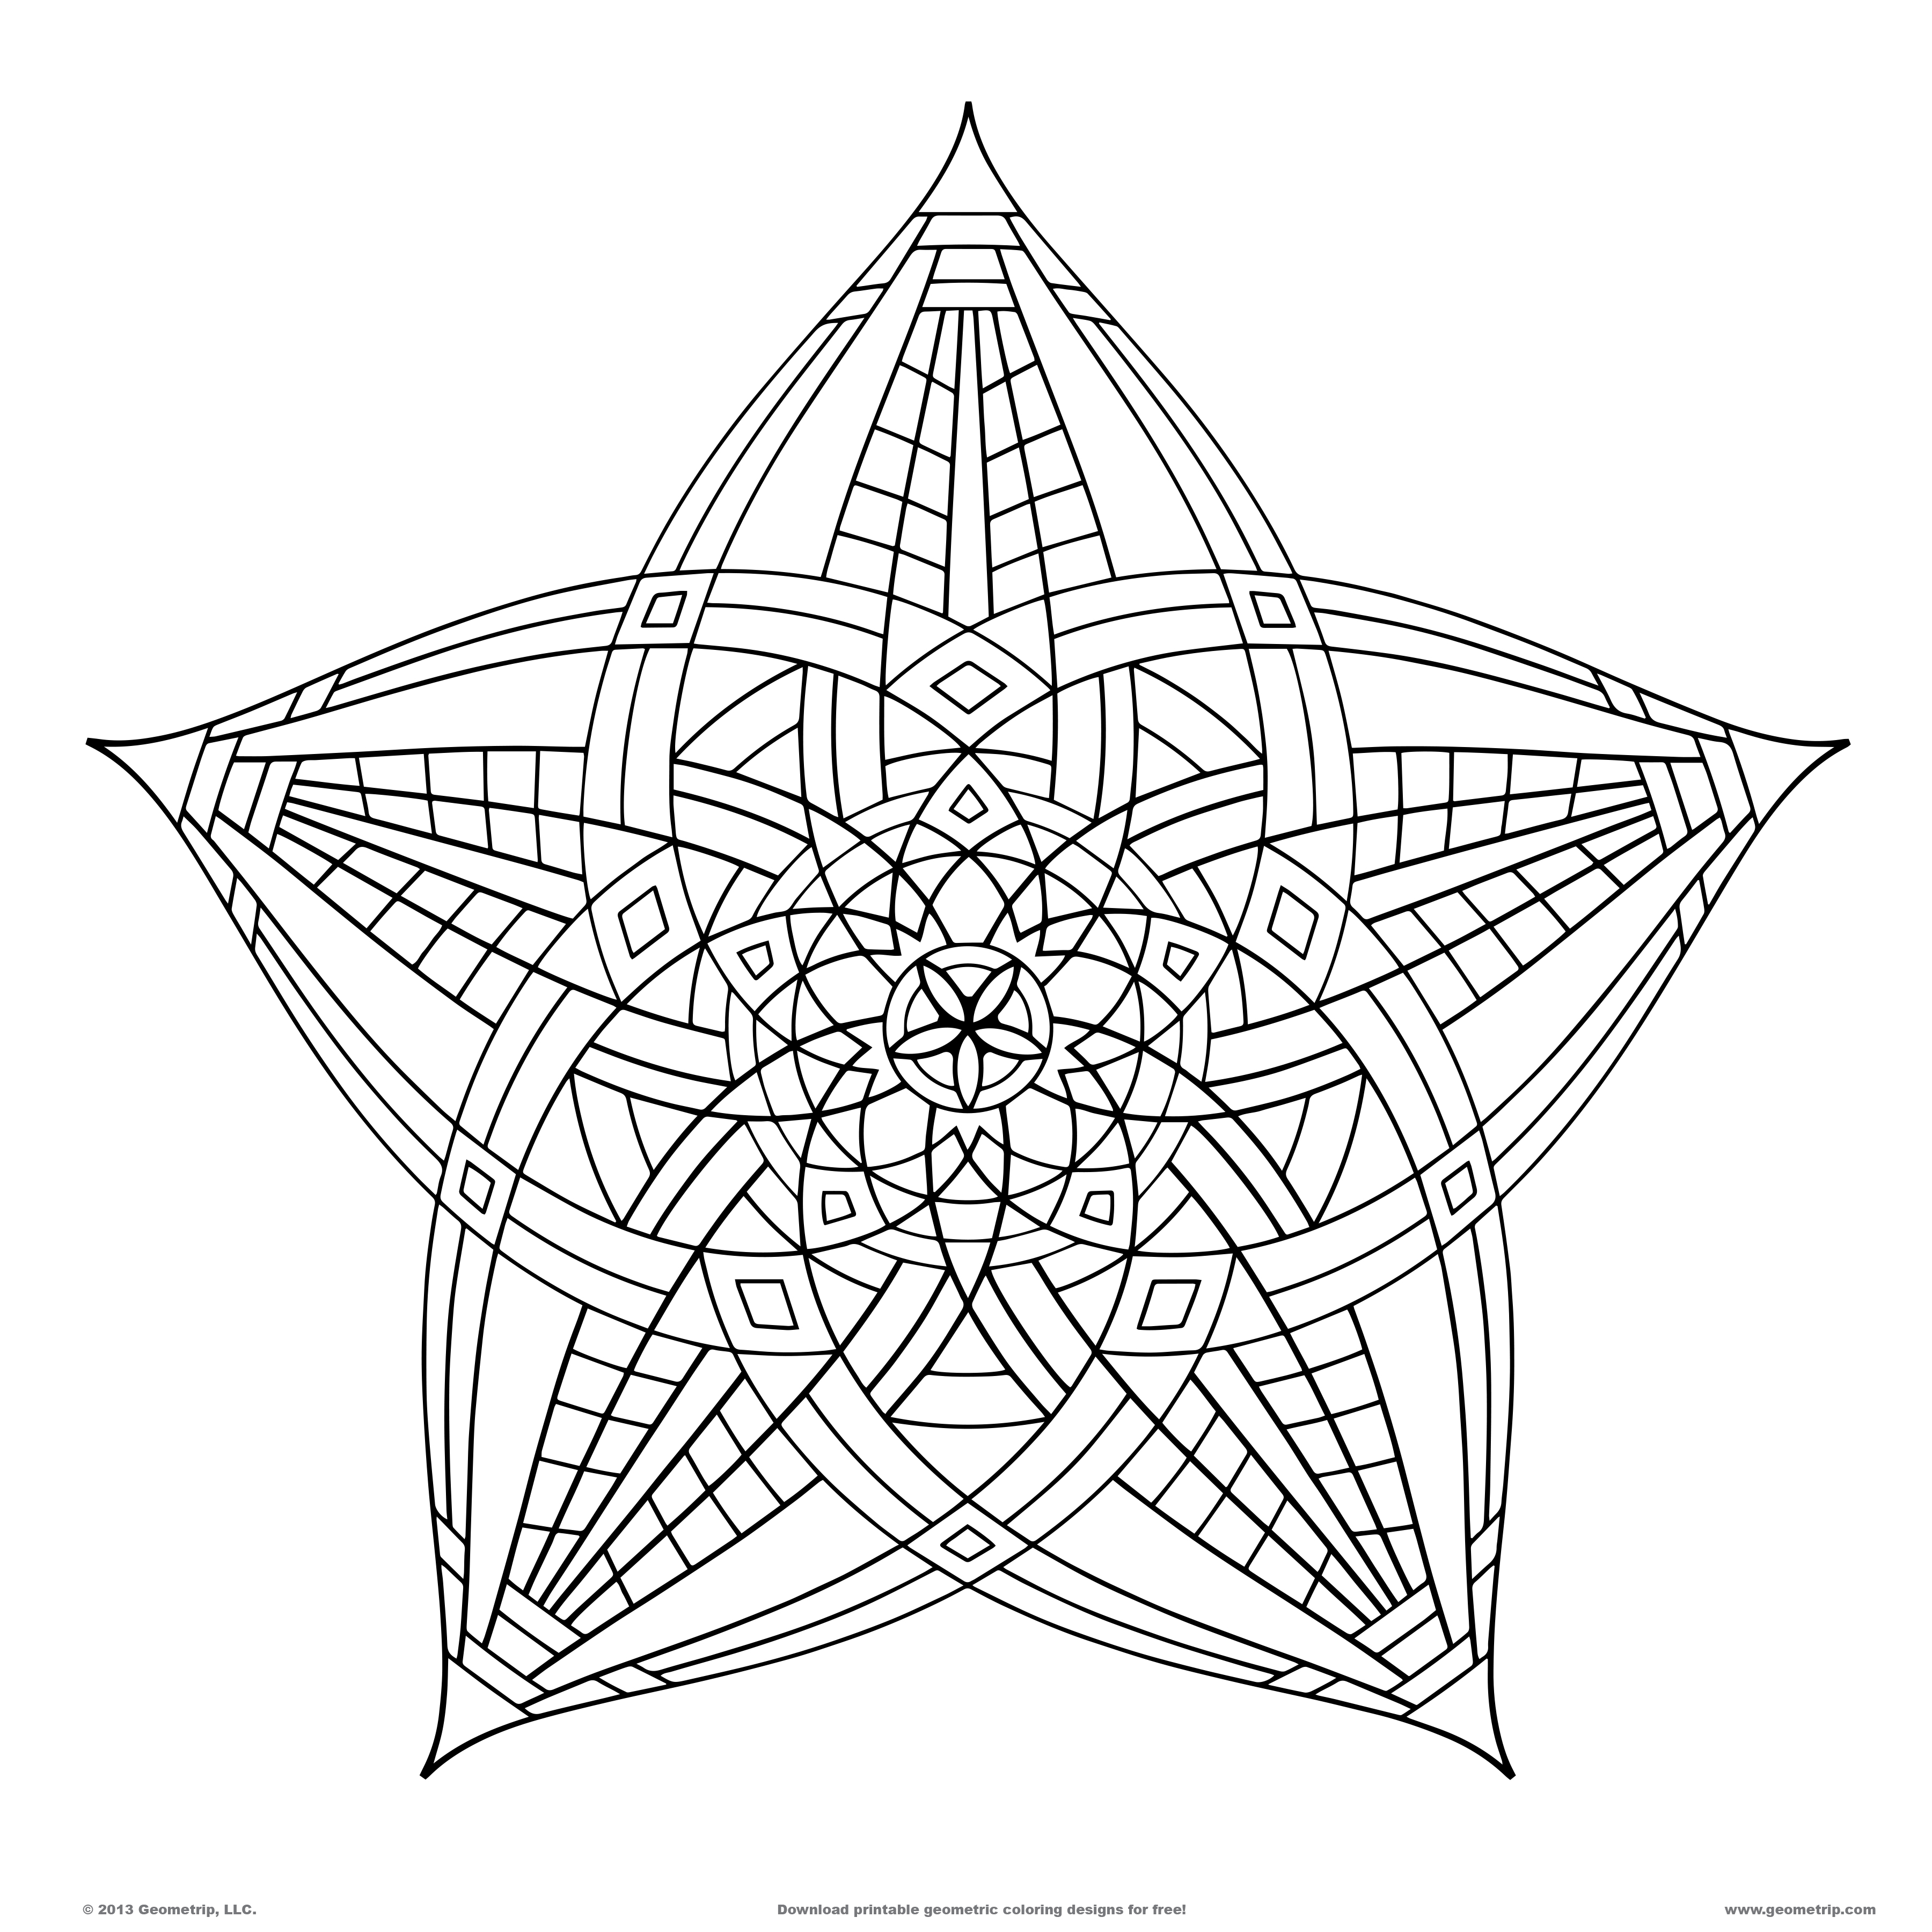 coloring pages of cool designs 16 cool coloring pages of designs images cool geometric cool designs of pages coloring